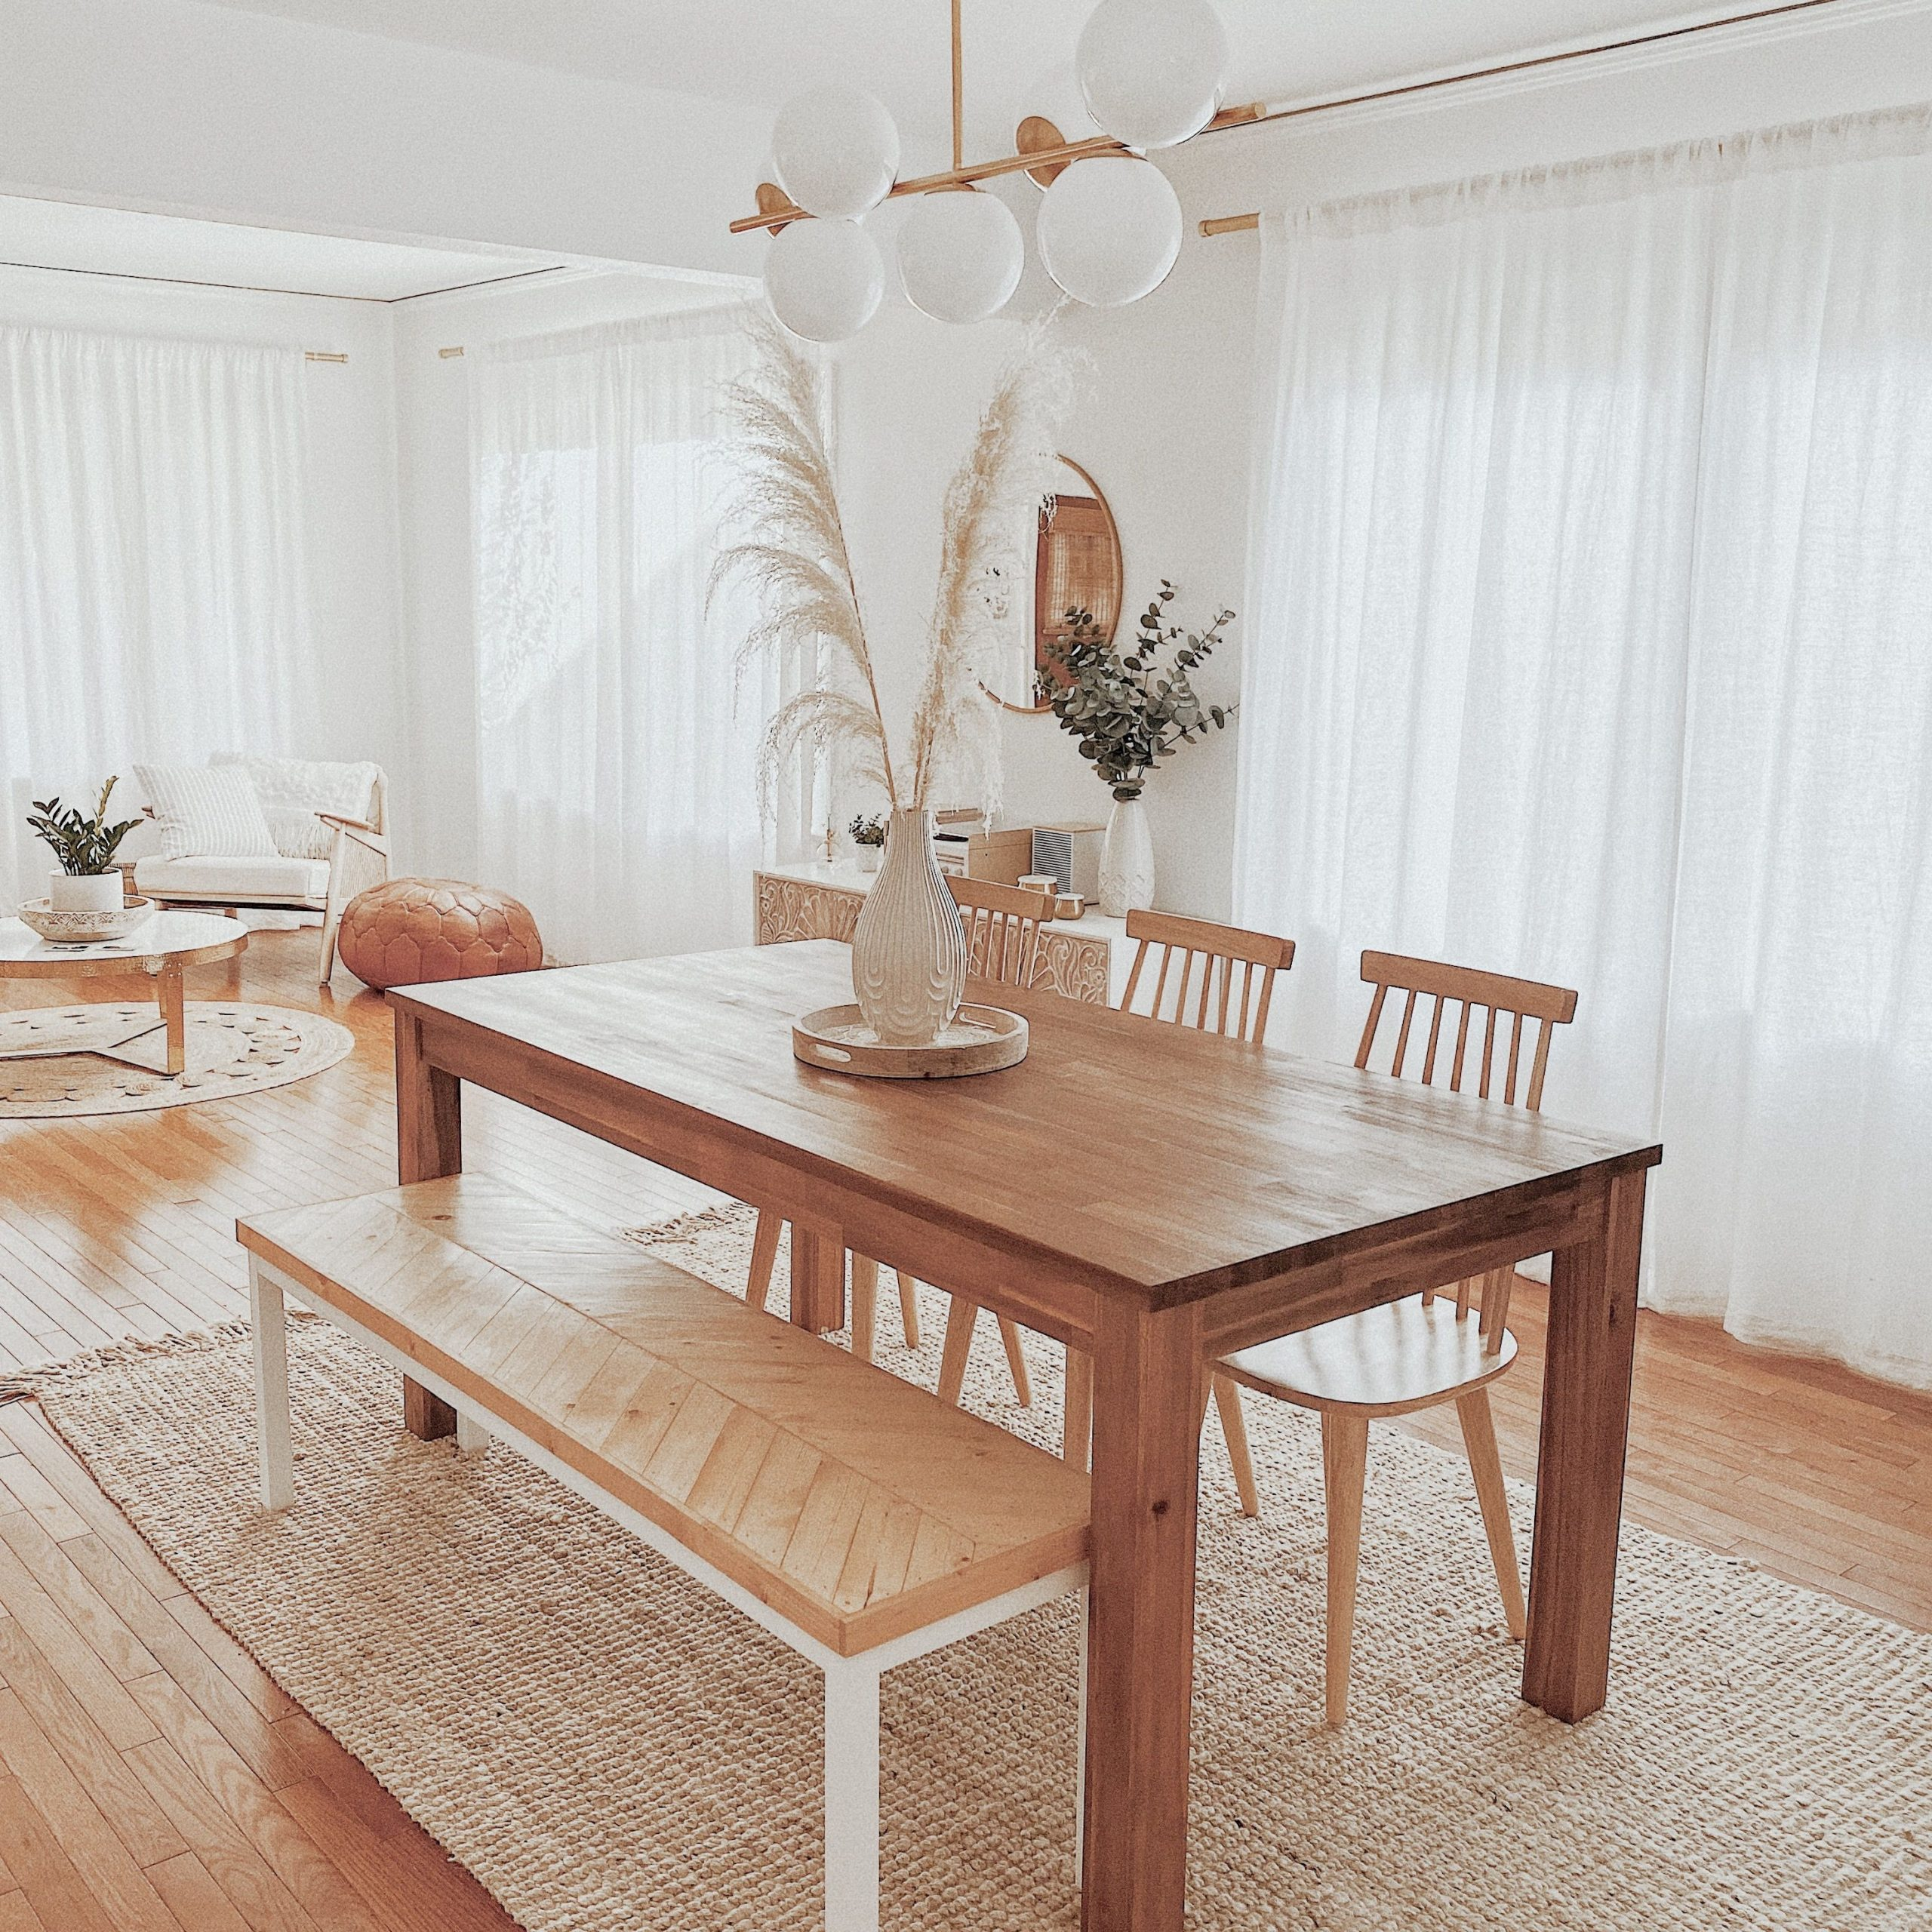 Awe-inspiring Boho Living Room Decor On A Budget Ideas Spaces Living Room Chairs On Appealing Boho Bohemian White Wood Cozy Dining Room Living Space Home On Boho Living Room Decor On A Budget Ideas Spaces Living Room Chairs